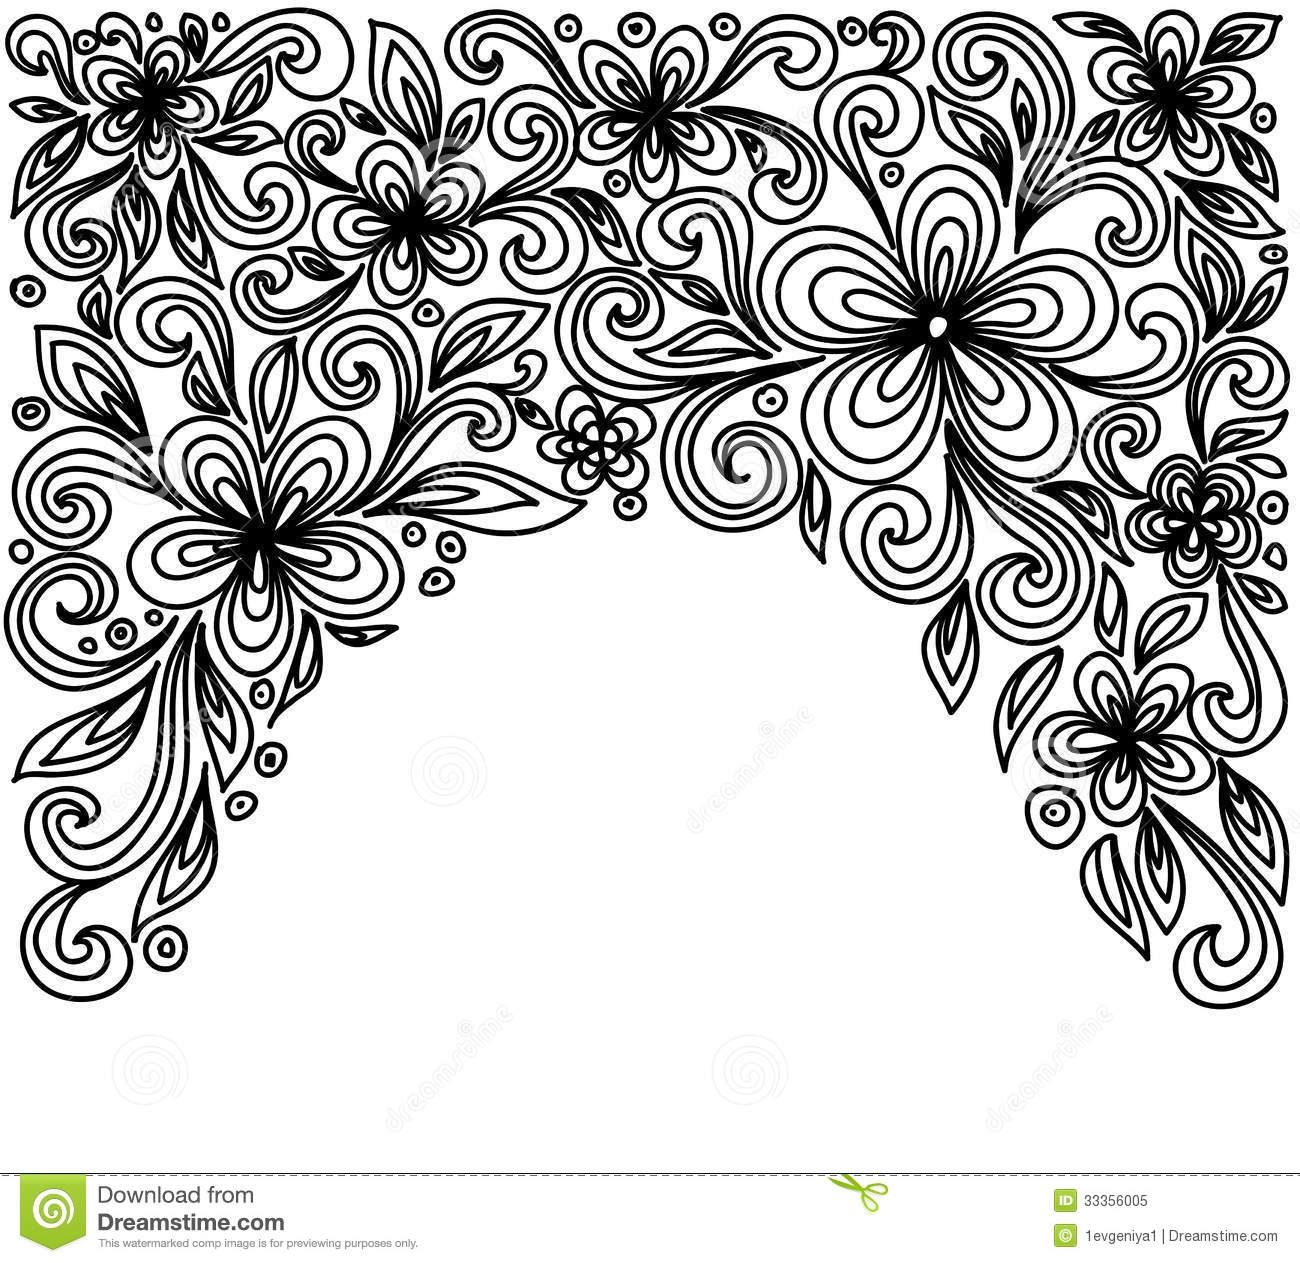 black and white flower designs